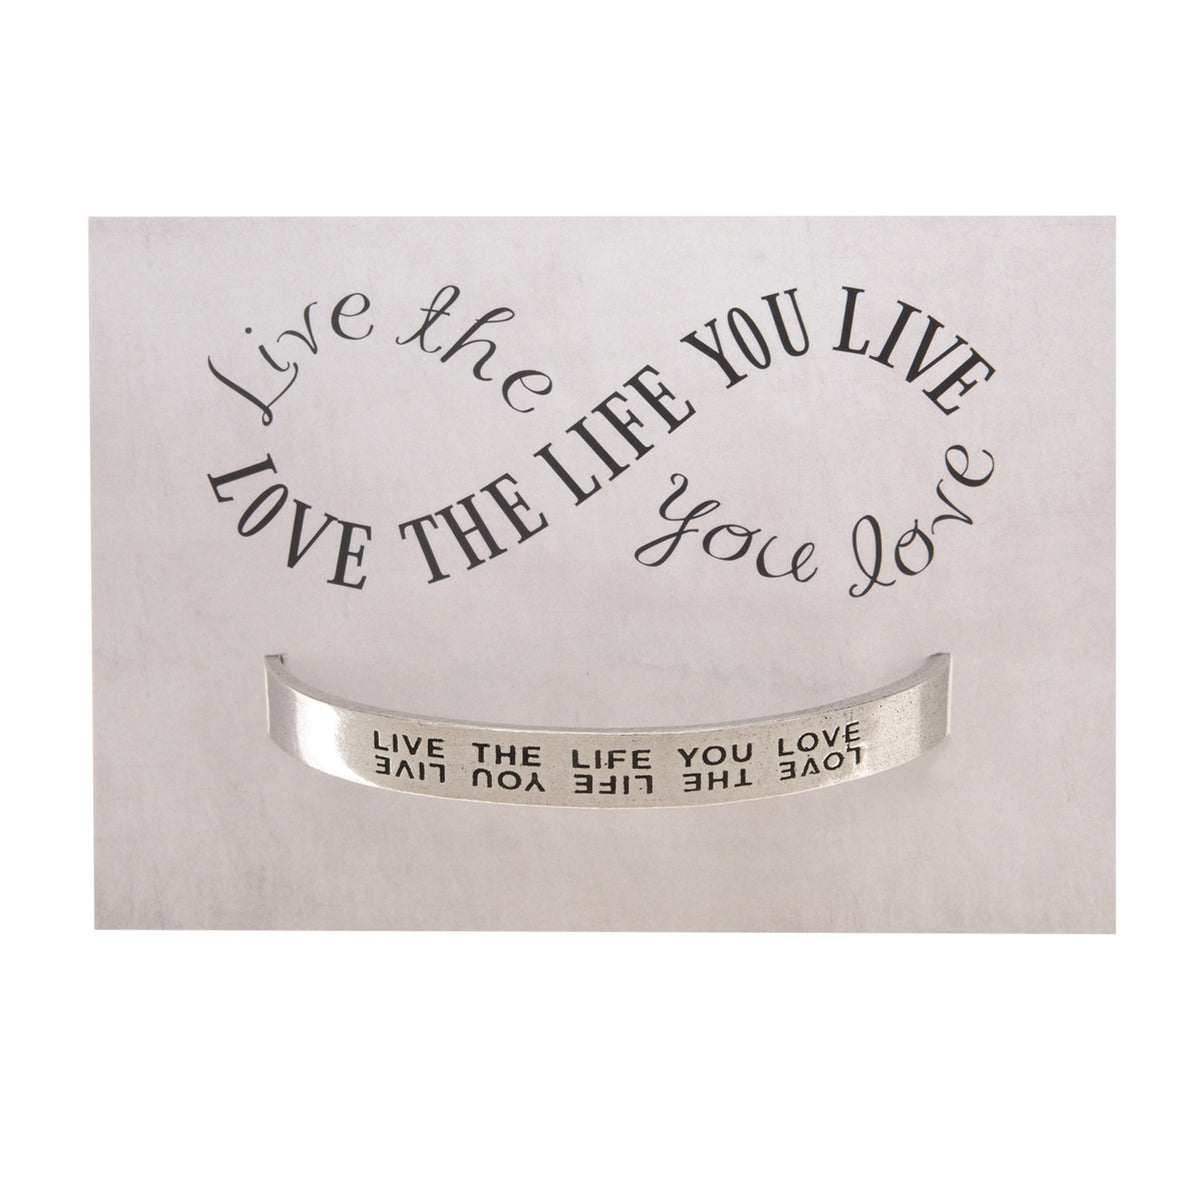 Live the Life You Love Quotable Cuff Bracelet - Whitney Howard Designs